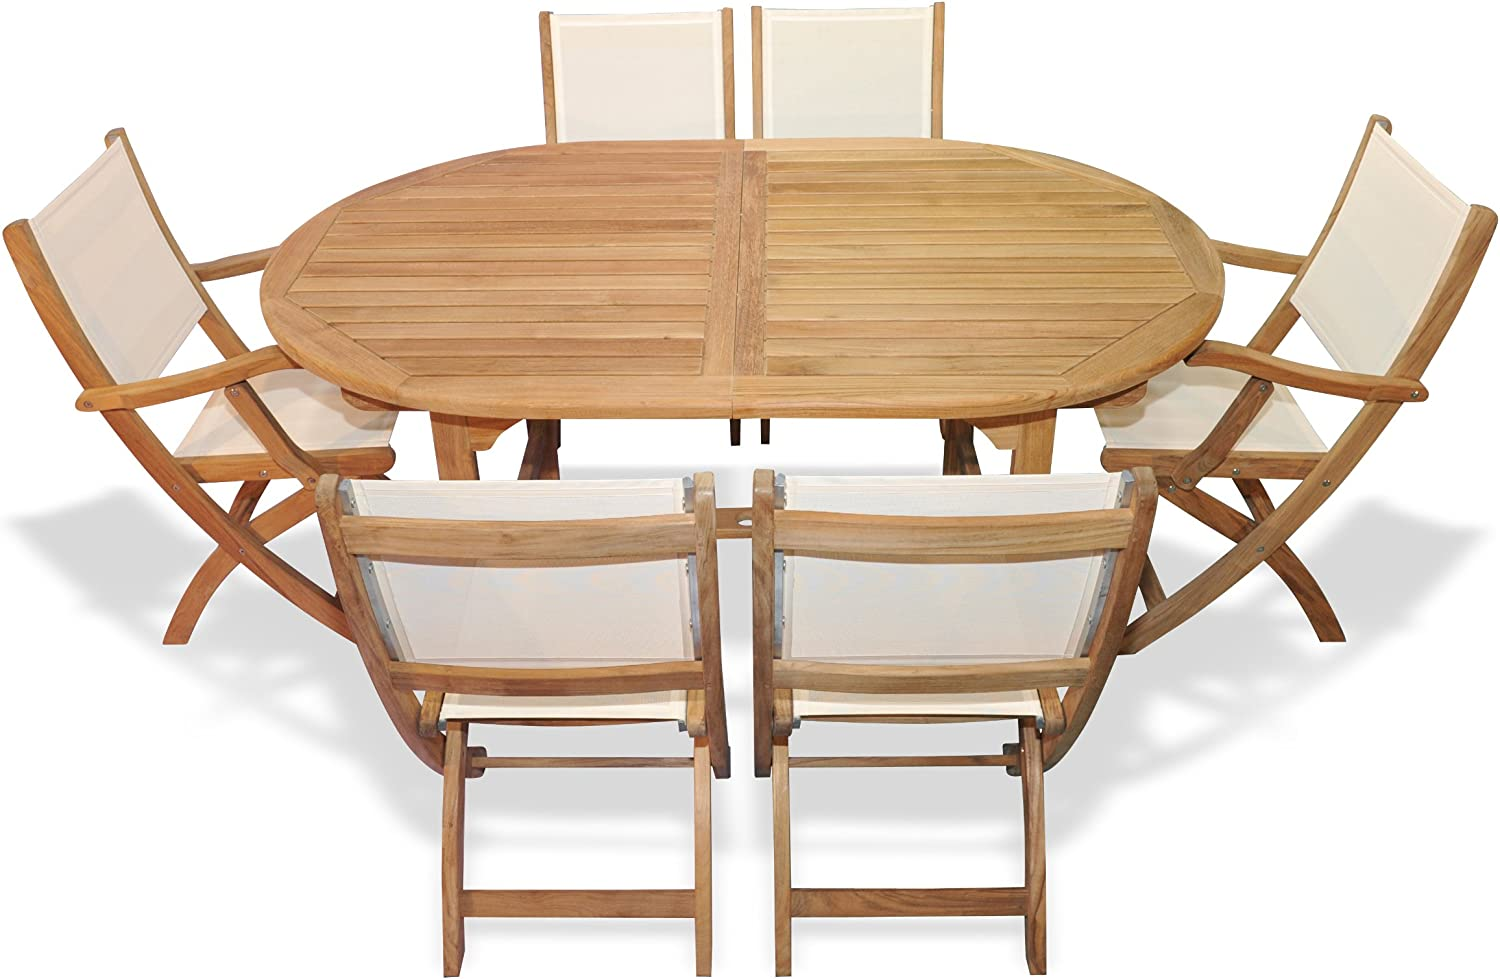 Bar Height Glass Table, Amazon Com Goldenteak Teak Outdoor Dining Set For 6 Oval Table With Teak And Sling Folding Chairs Outdoor And Patio Furniture Sets Garden Outdoor